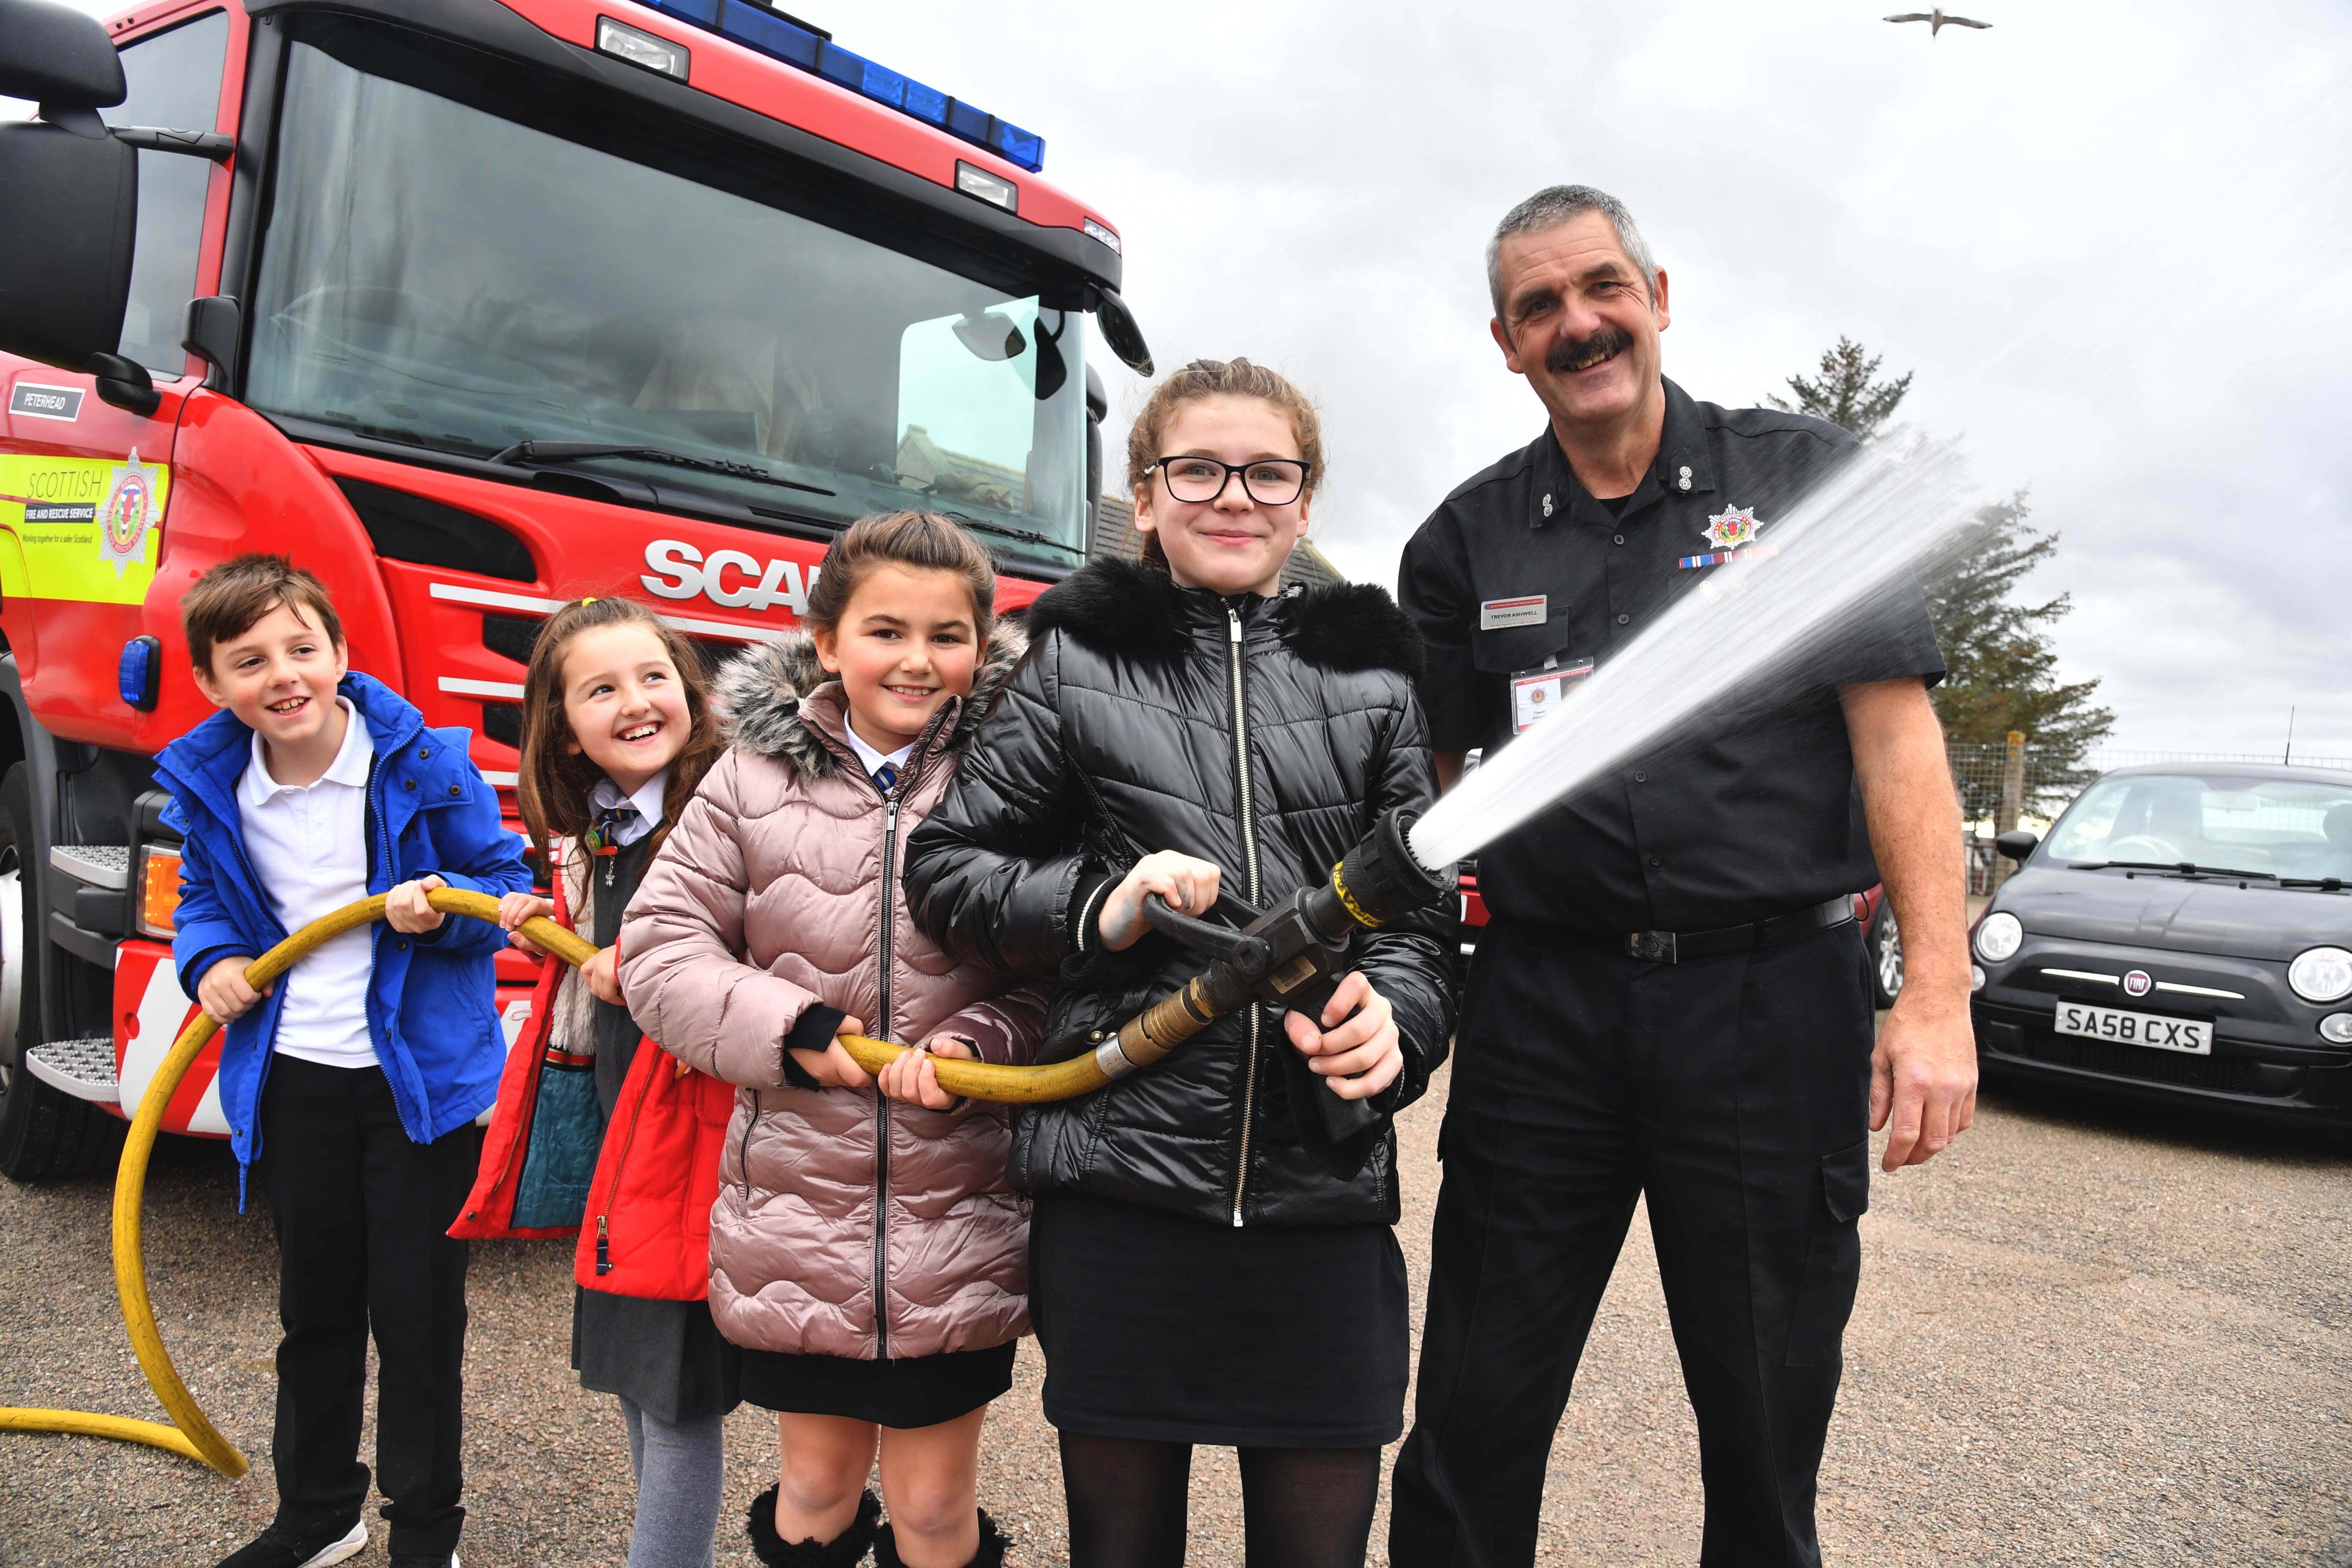 St Fergus Primary pupils (L-R) Clayton Smith, Georgie Robertson, Mylee Hastie and Bethany Duthie get hands on with a fire hose under the watchful eye of Peterhead firefighter Trevor Ashwell